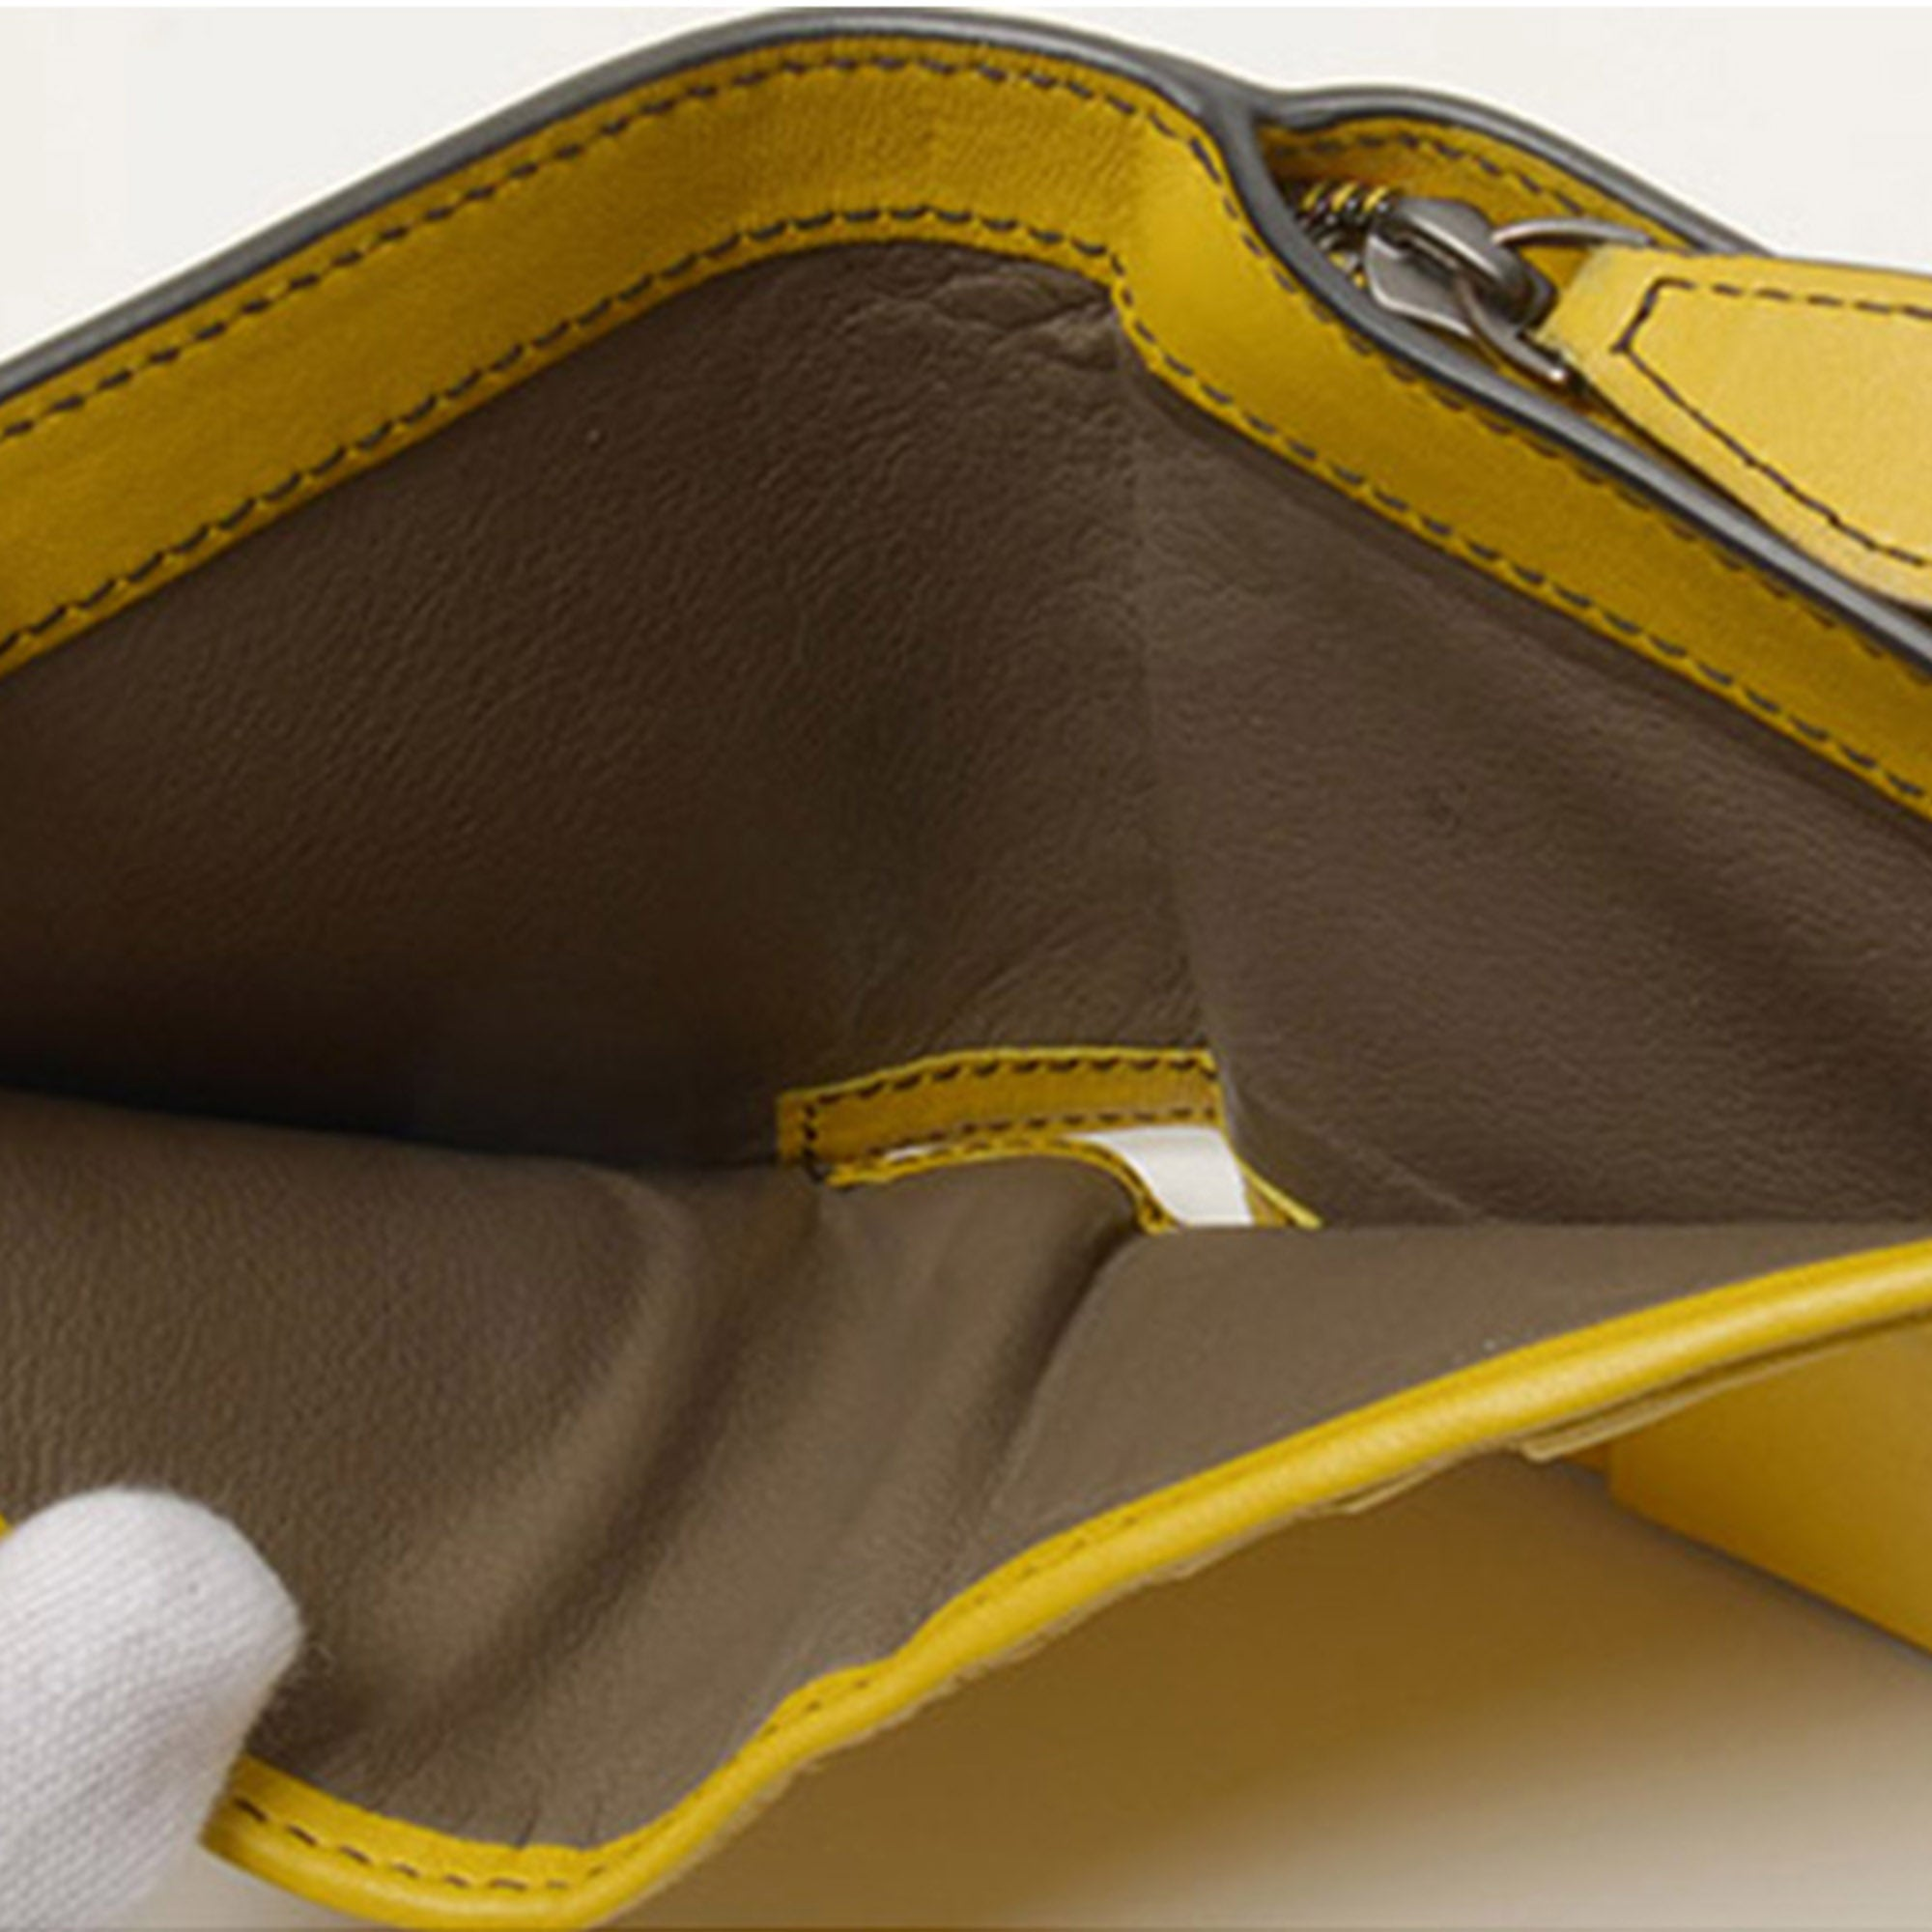 Bottega Veneta Yellow Intrecciato Leather Bifold Wallet